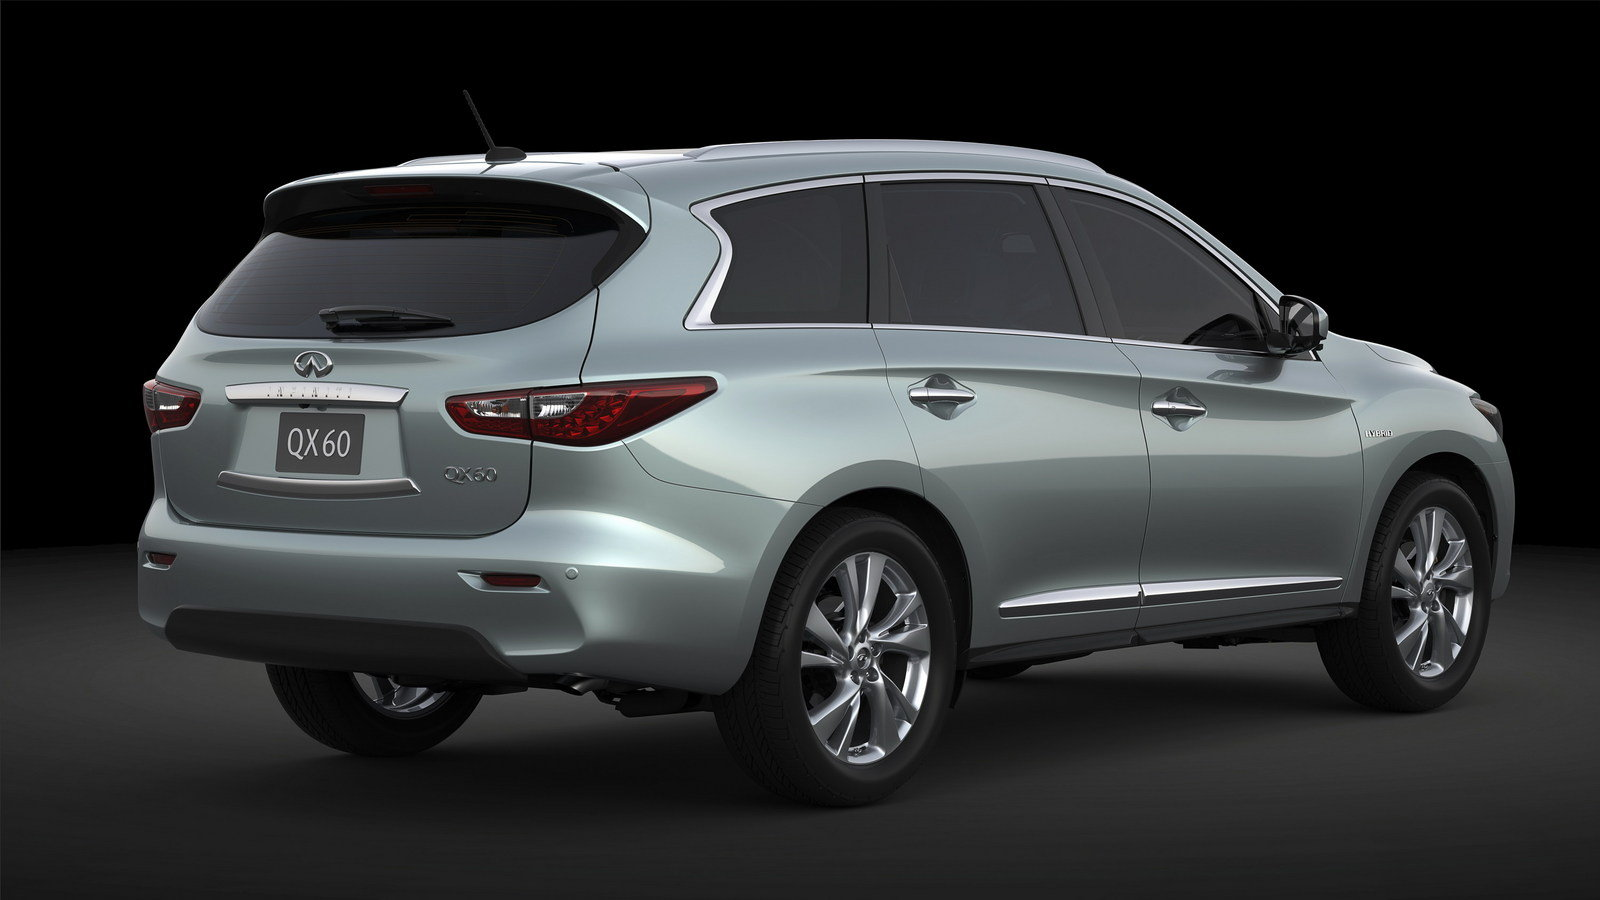 2014 infiniti qx60 hybrid review top speed. Black Bedroom Furniture Sets. Home Design Ideas